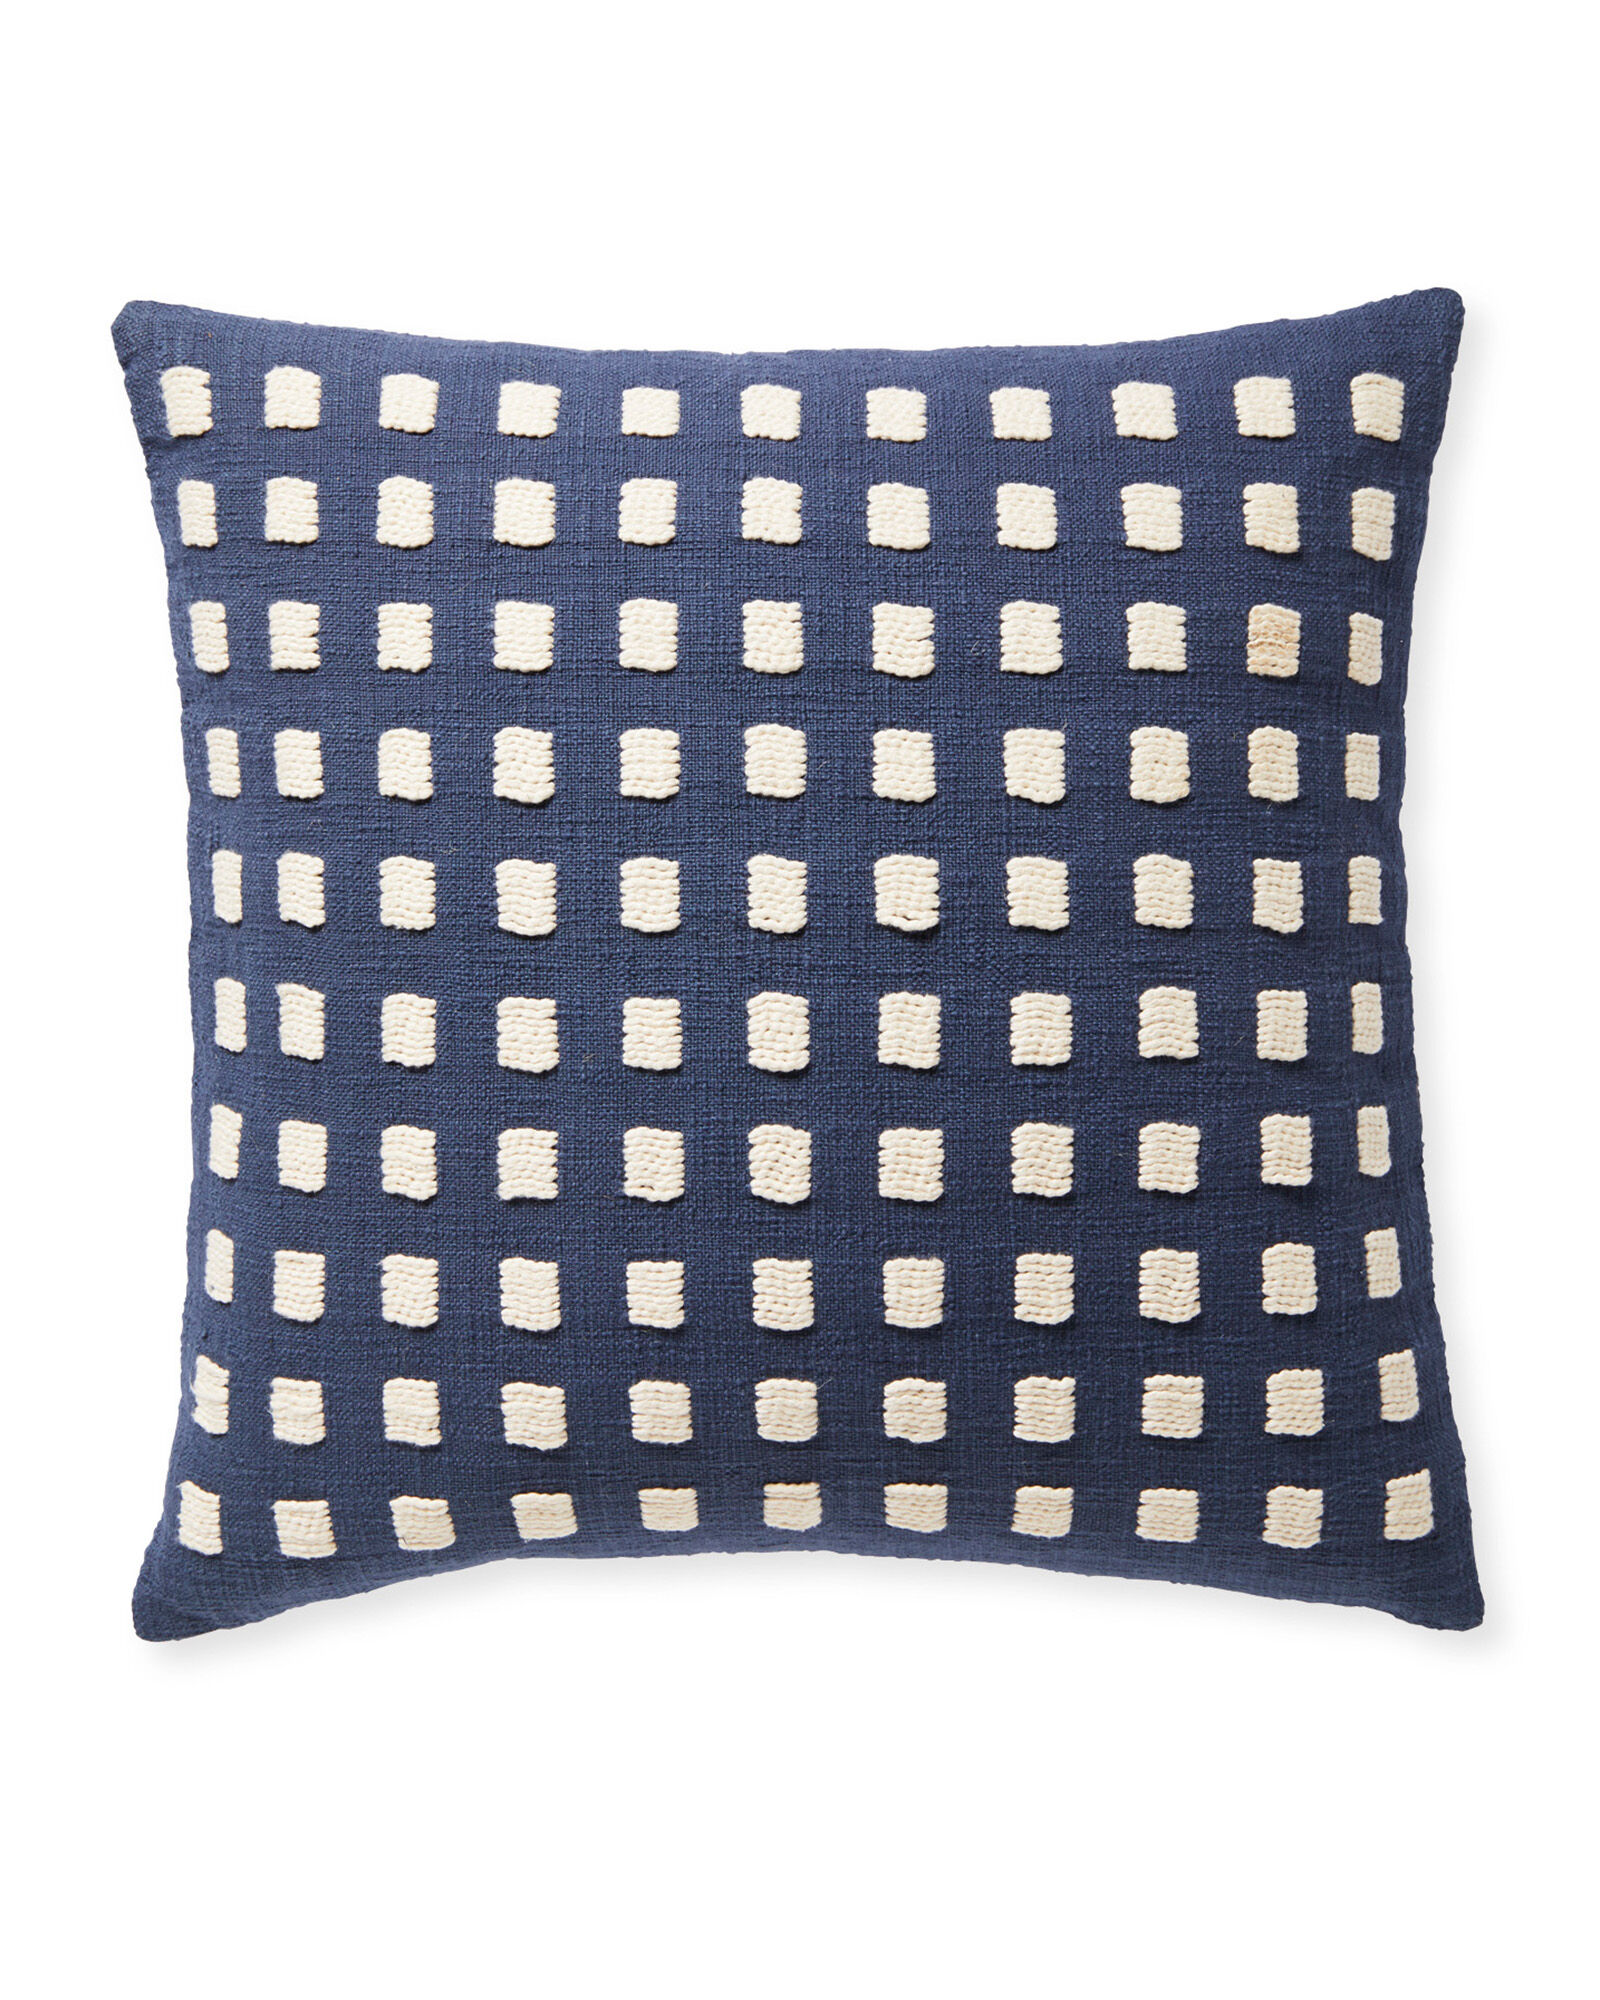 Pebble Cove Pillow Cover